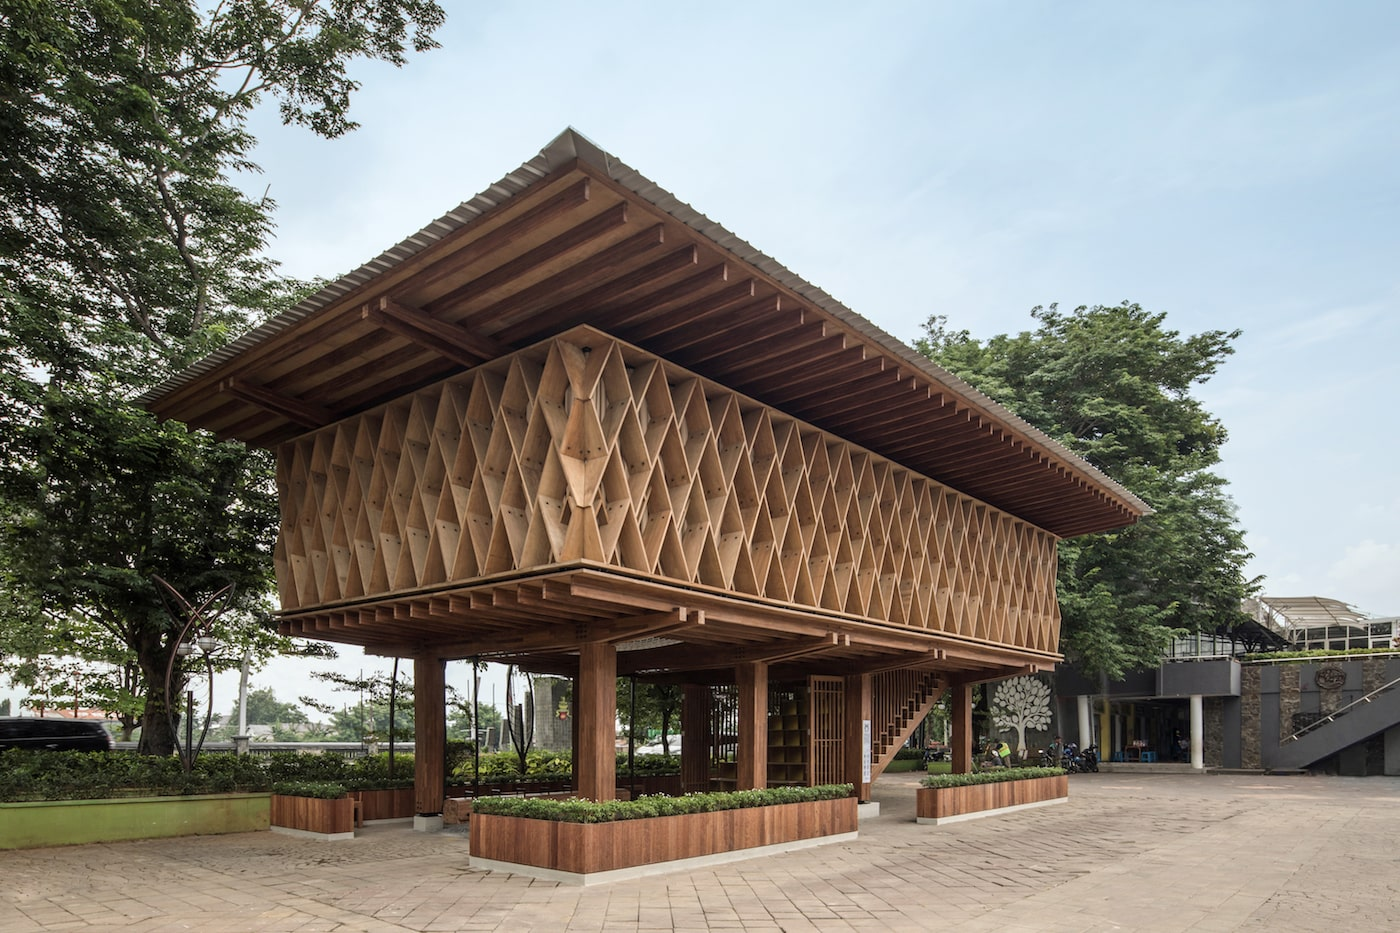 External view of timber library with overhanging eaves